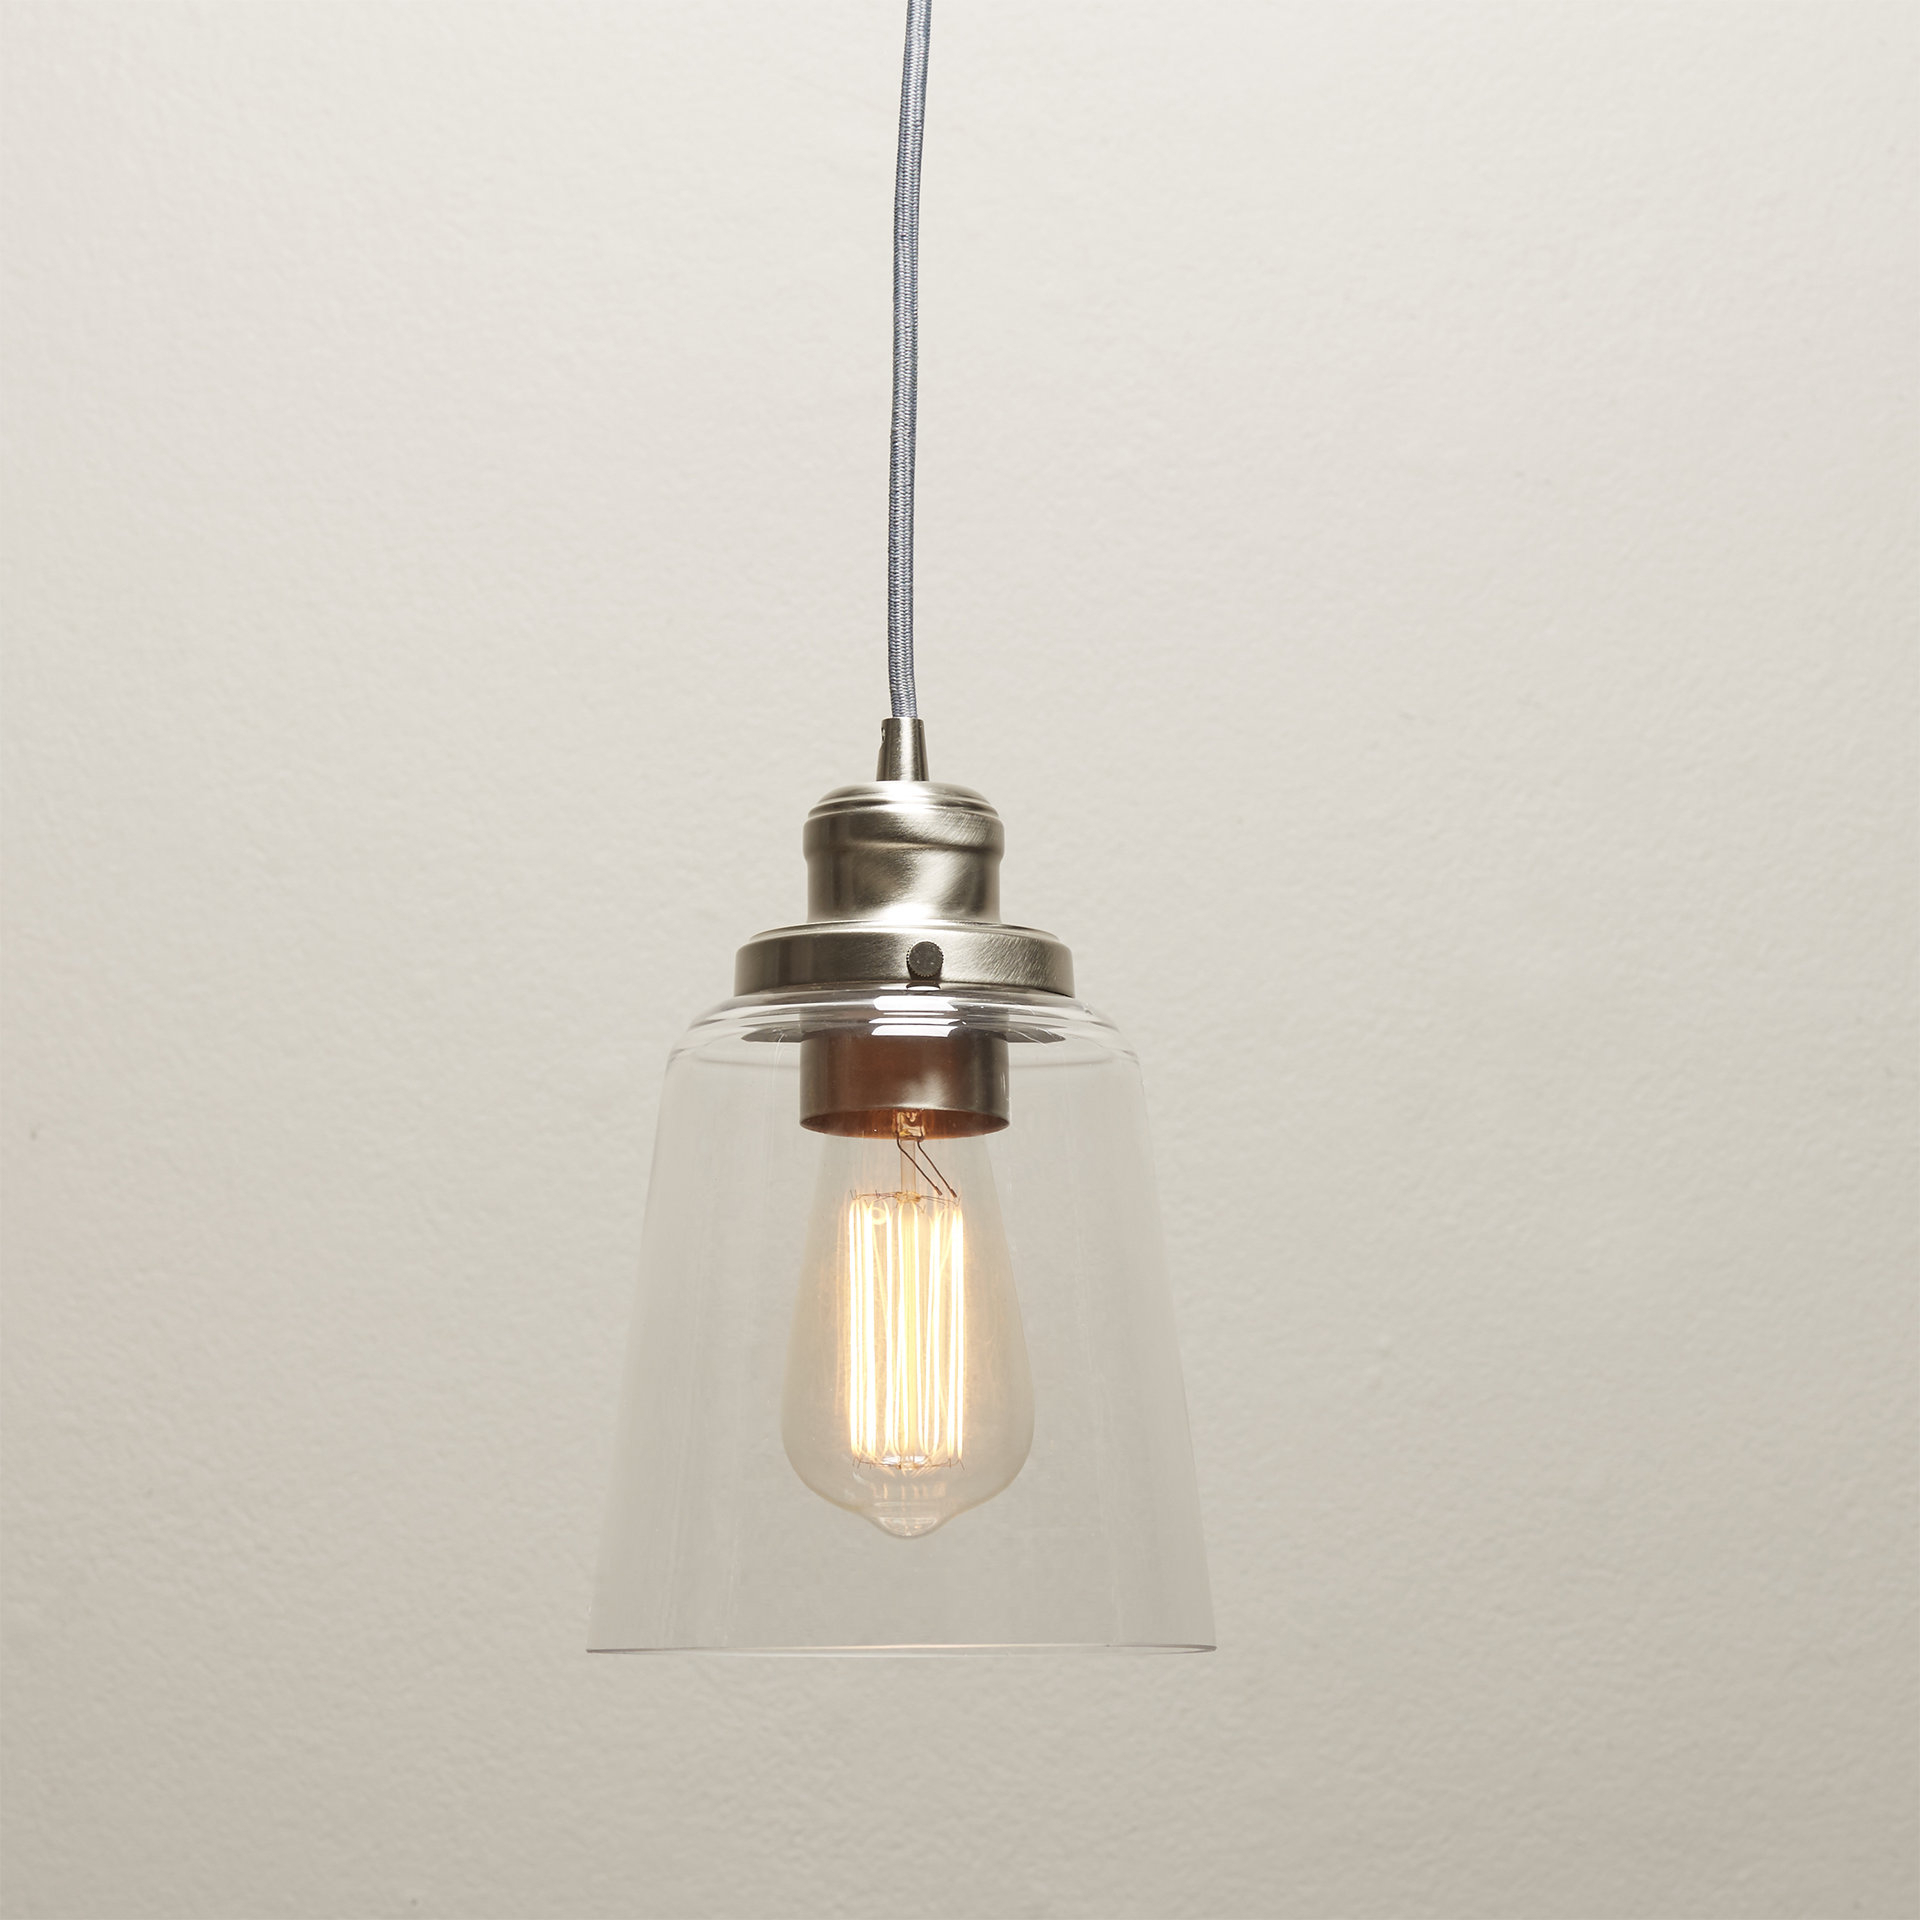 1 Light Single Bell Pendant Pertaining To Current Roslindale 1 Light Single Bell Pendants (Gallery 3 of 25)